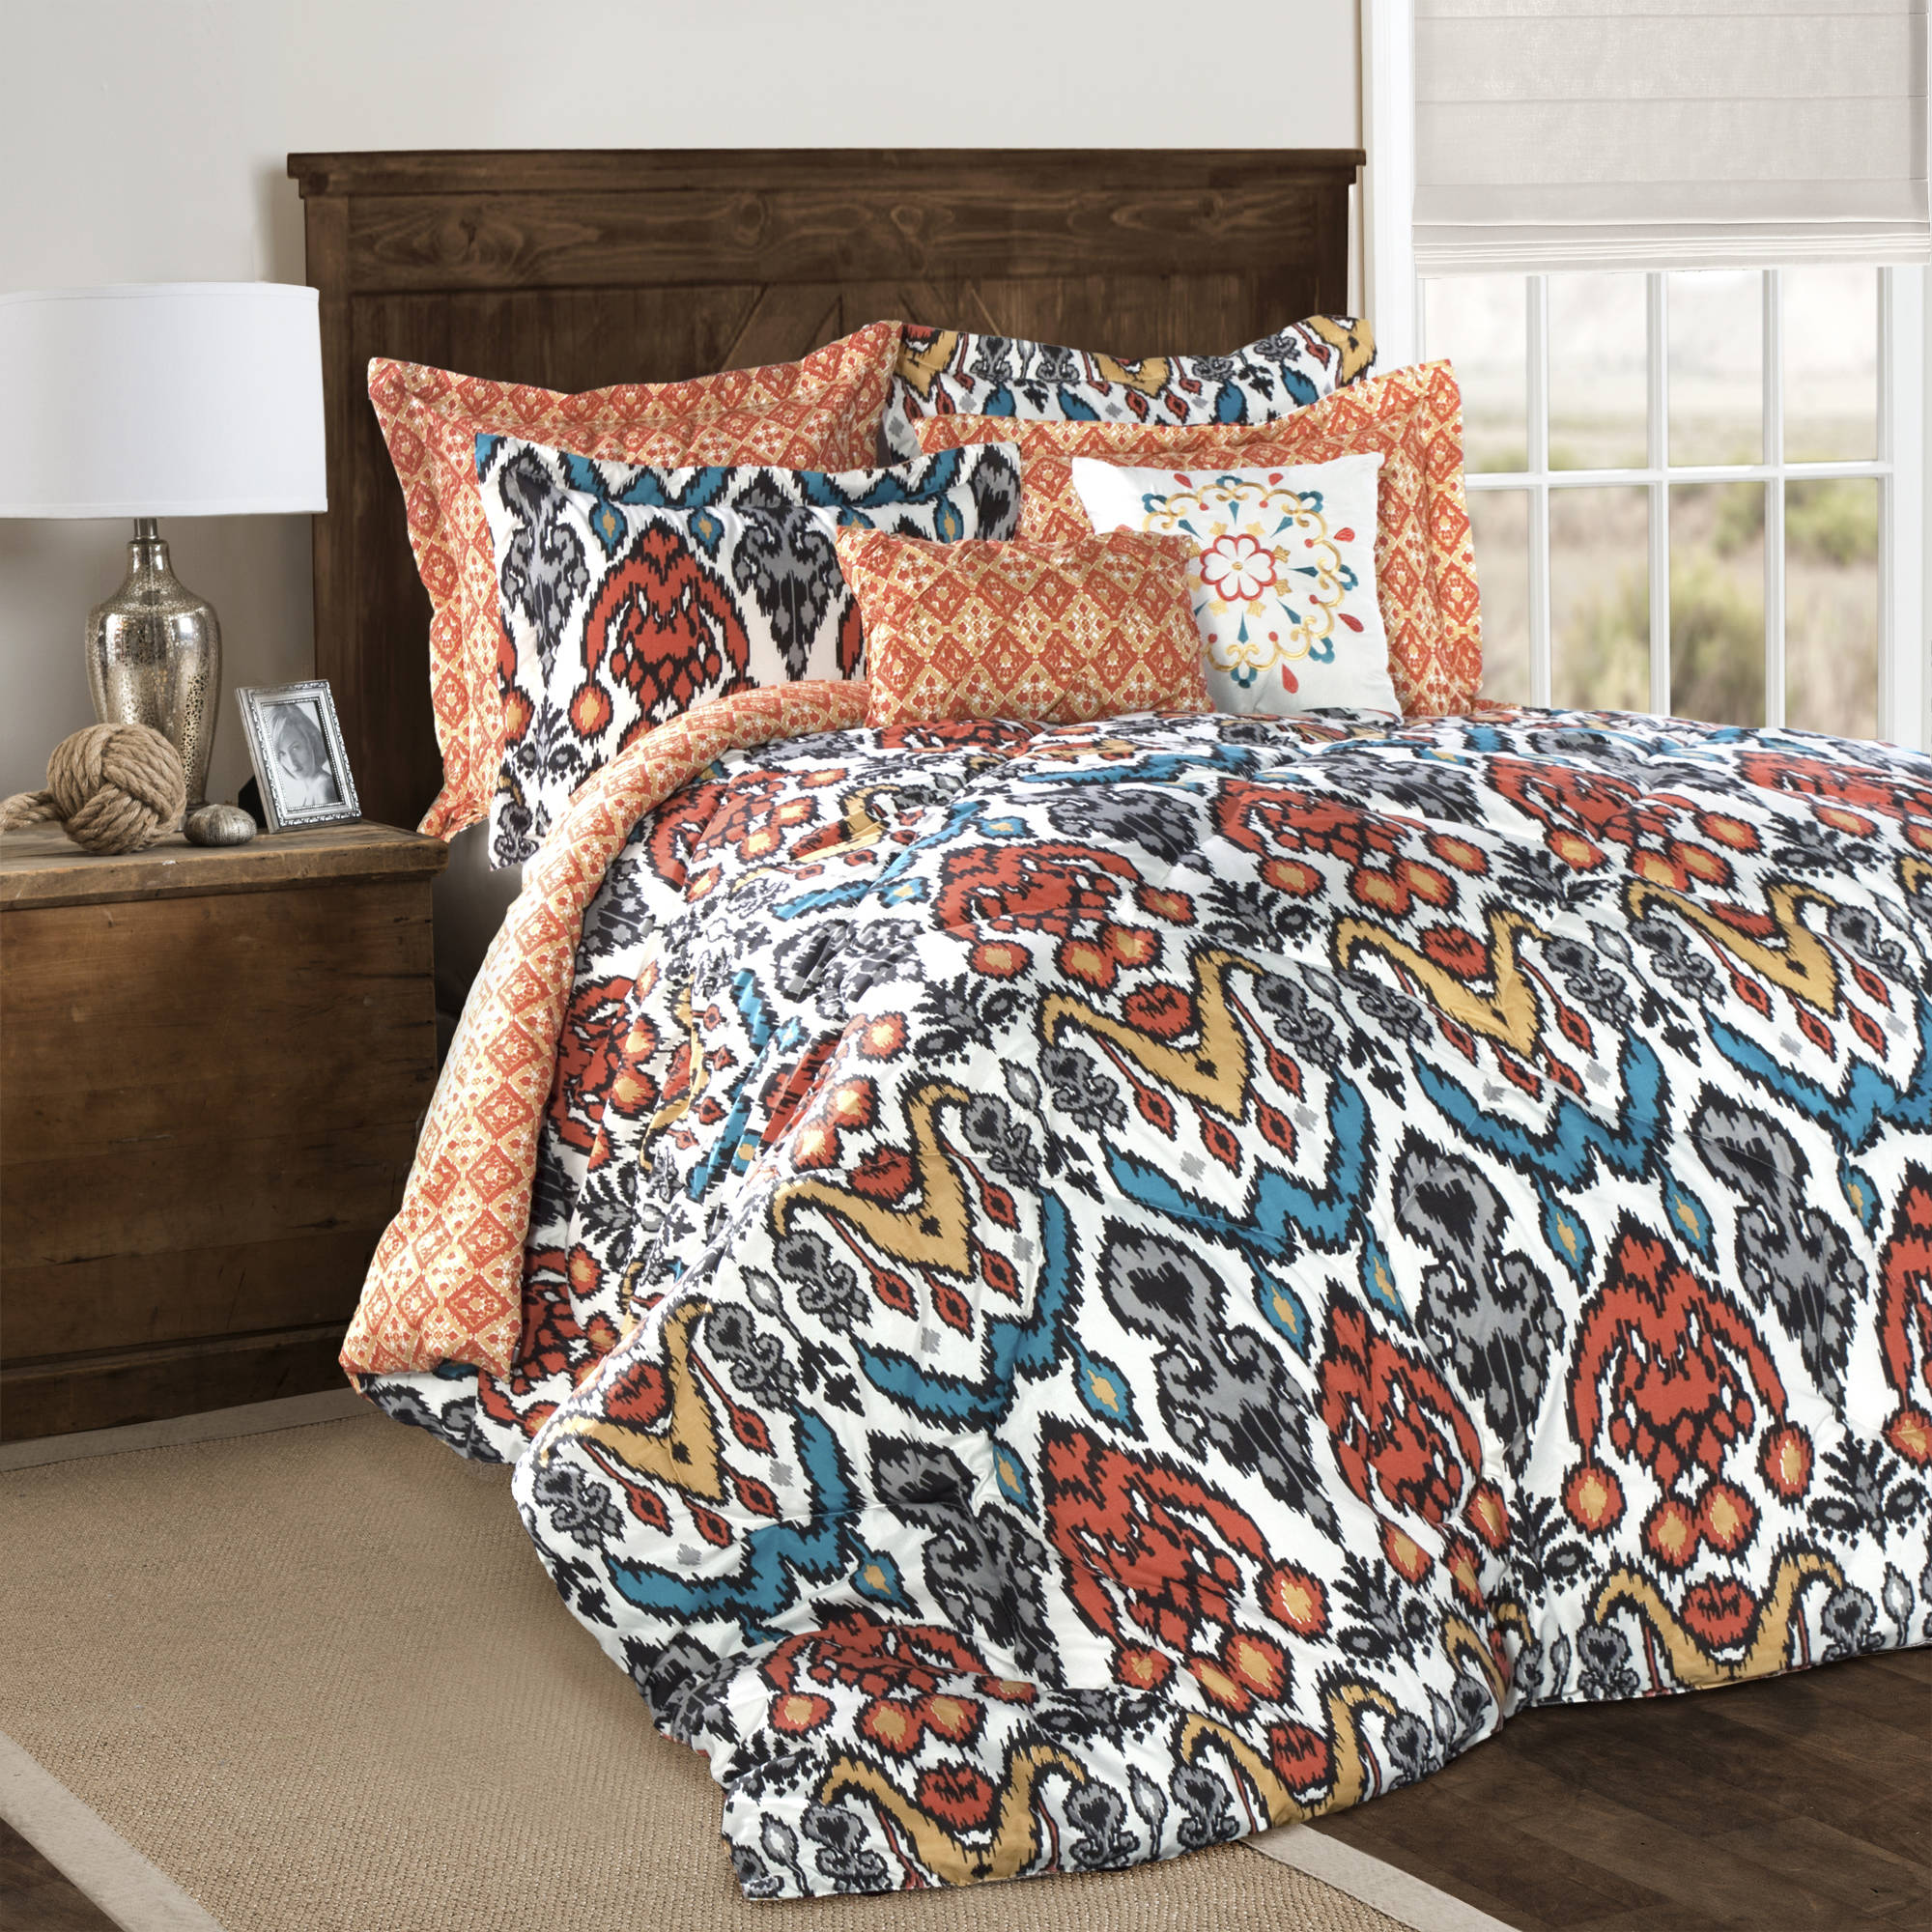 cover uk quilt and baby piece king brown size madison includes covers duvet comforter set bedspreads park decorative for bedding in hadley teal sets anthropologie duvets plaid coloured queen california leather throw rust shocking couch chocolate juliana blue of full rustic pillows slate falmouth